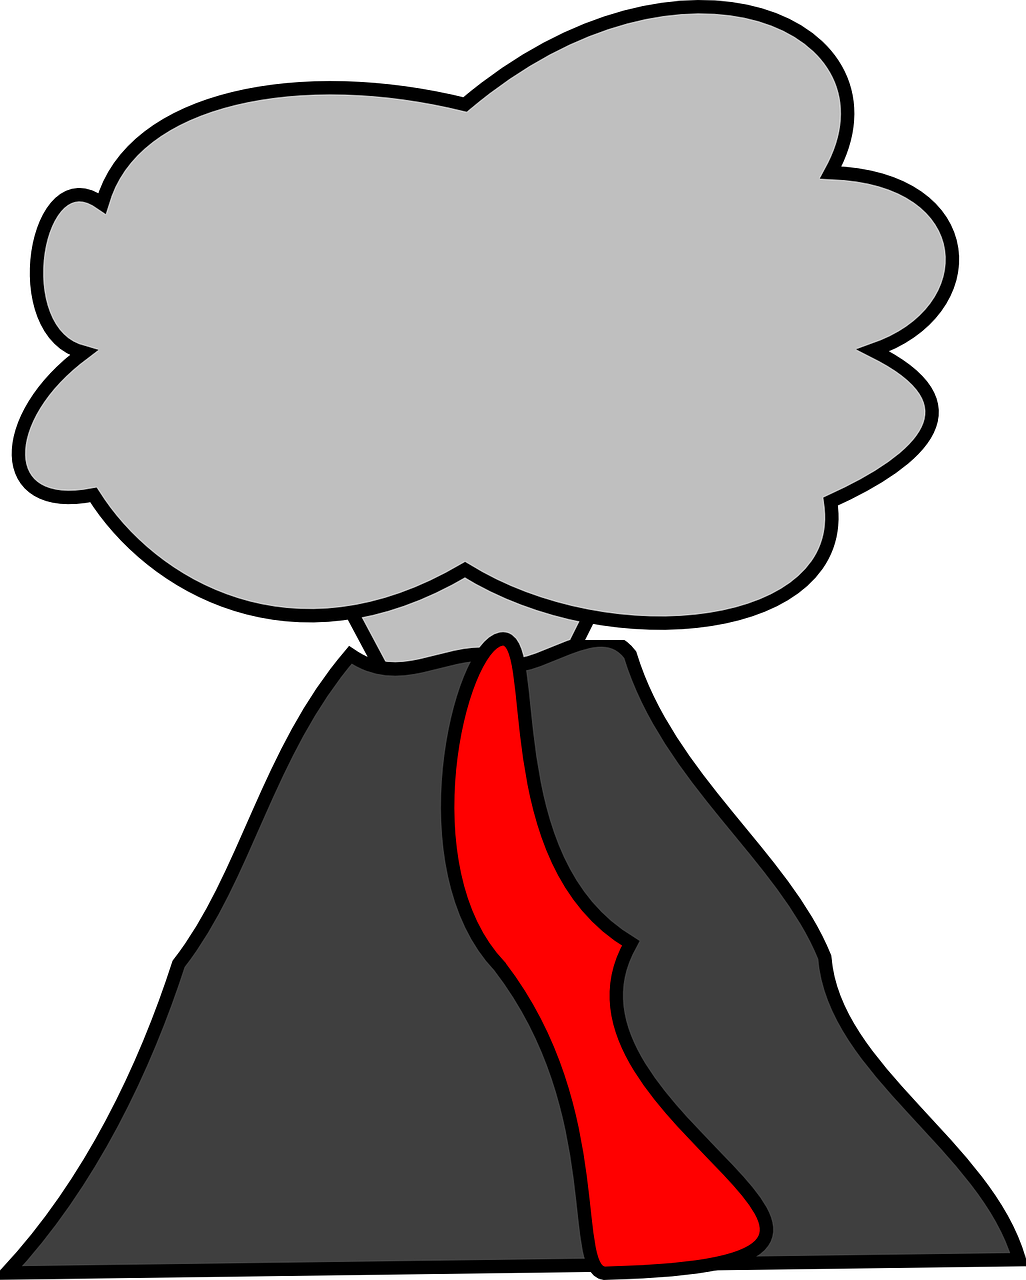 Free Simple Volcano Clip Art